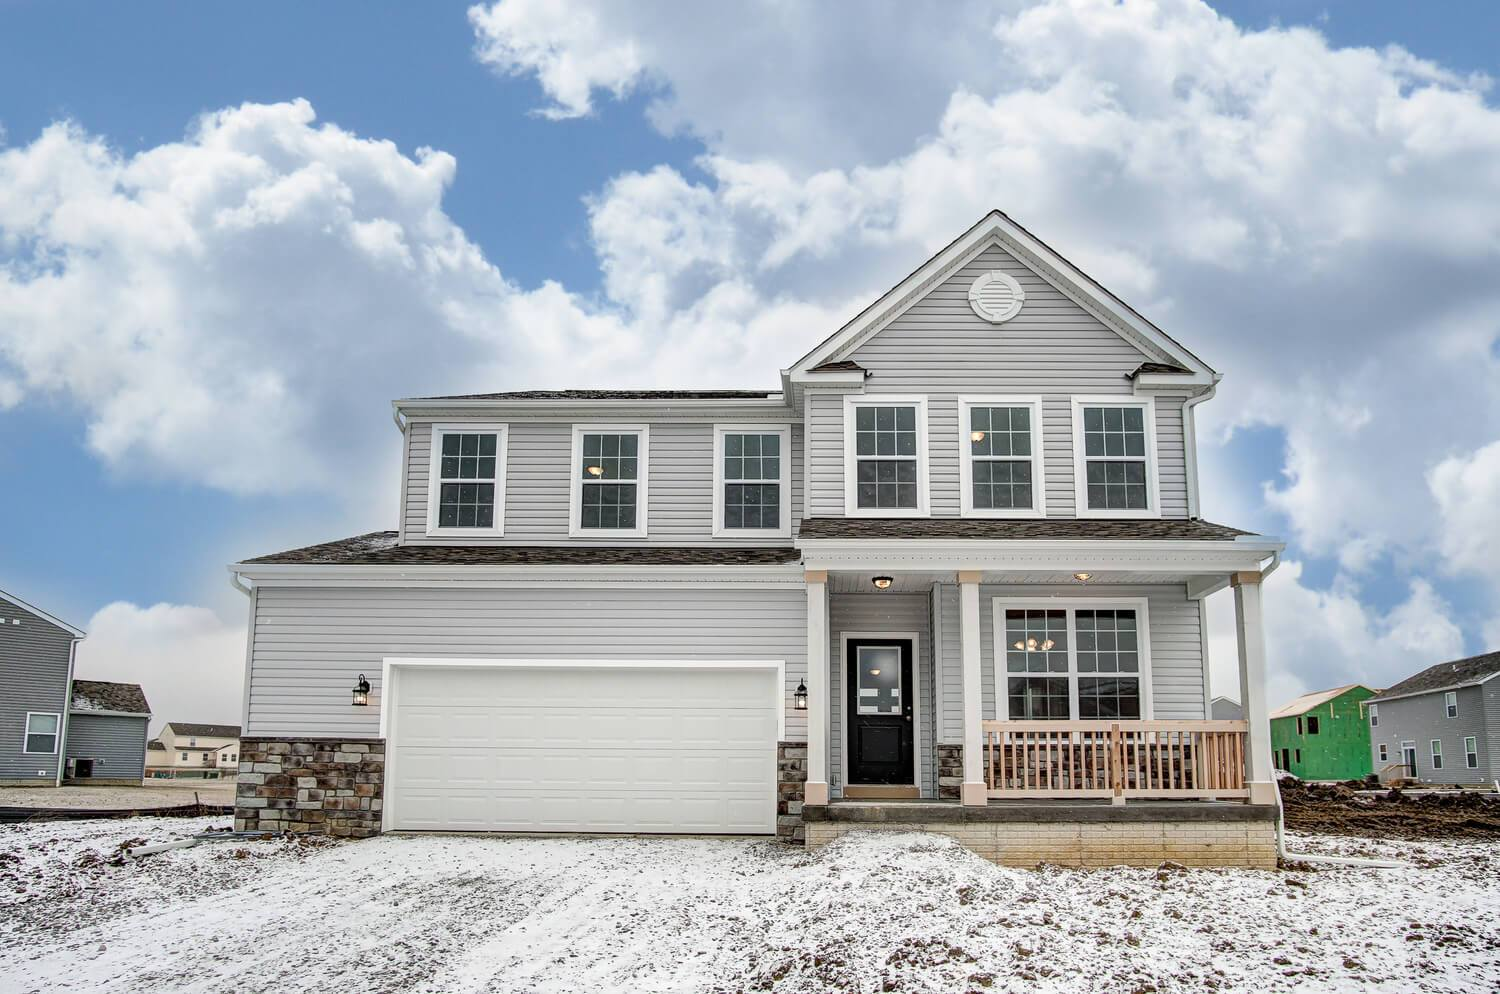 New Homes | Search Home Builders and New Homes for Sale ... on